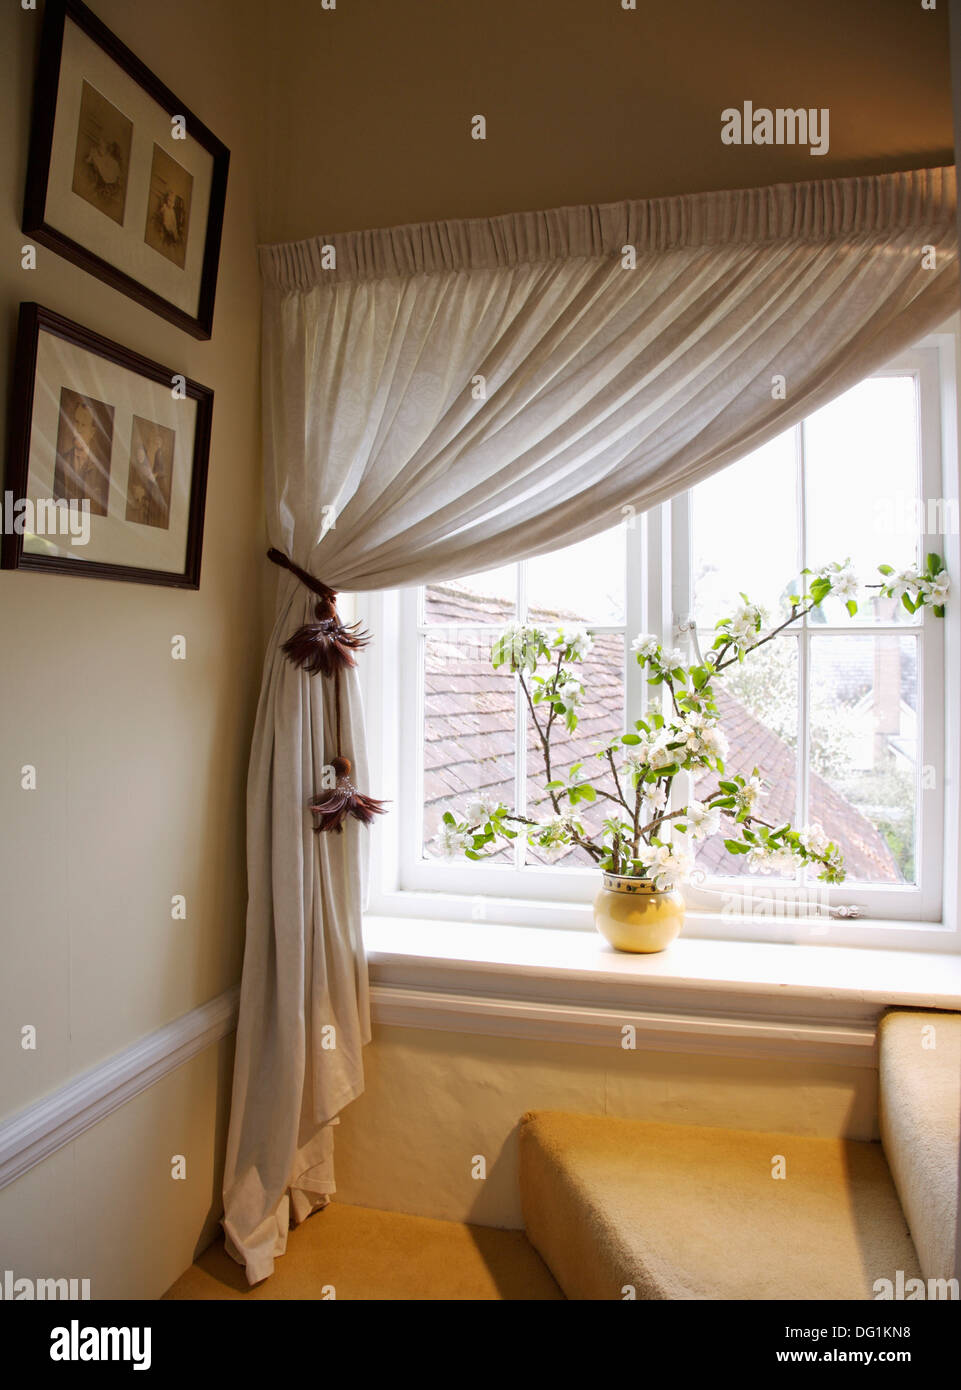 products multiple panelnickel nickel curtain colors indoor shatex wheat grommet and panel outdoor com ray hgmart uv sizes window protected in waterproofavailable single